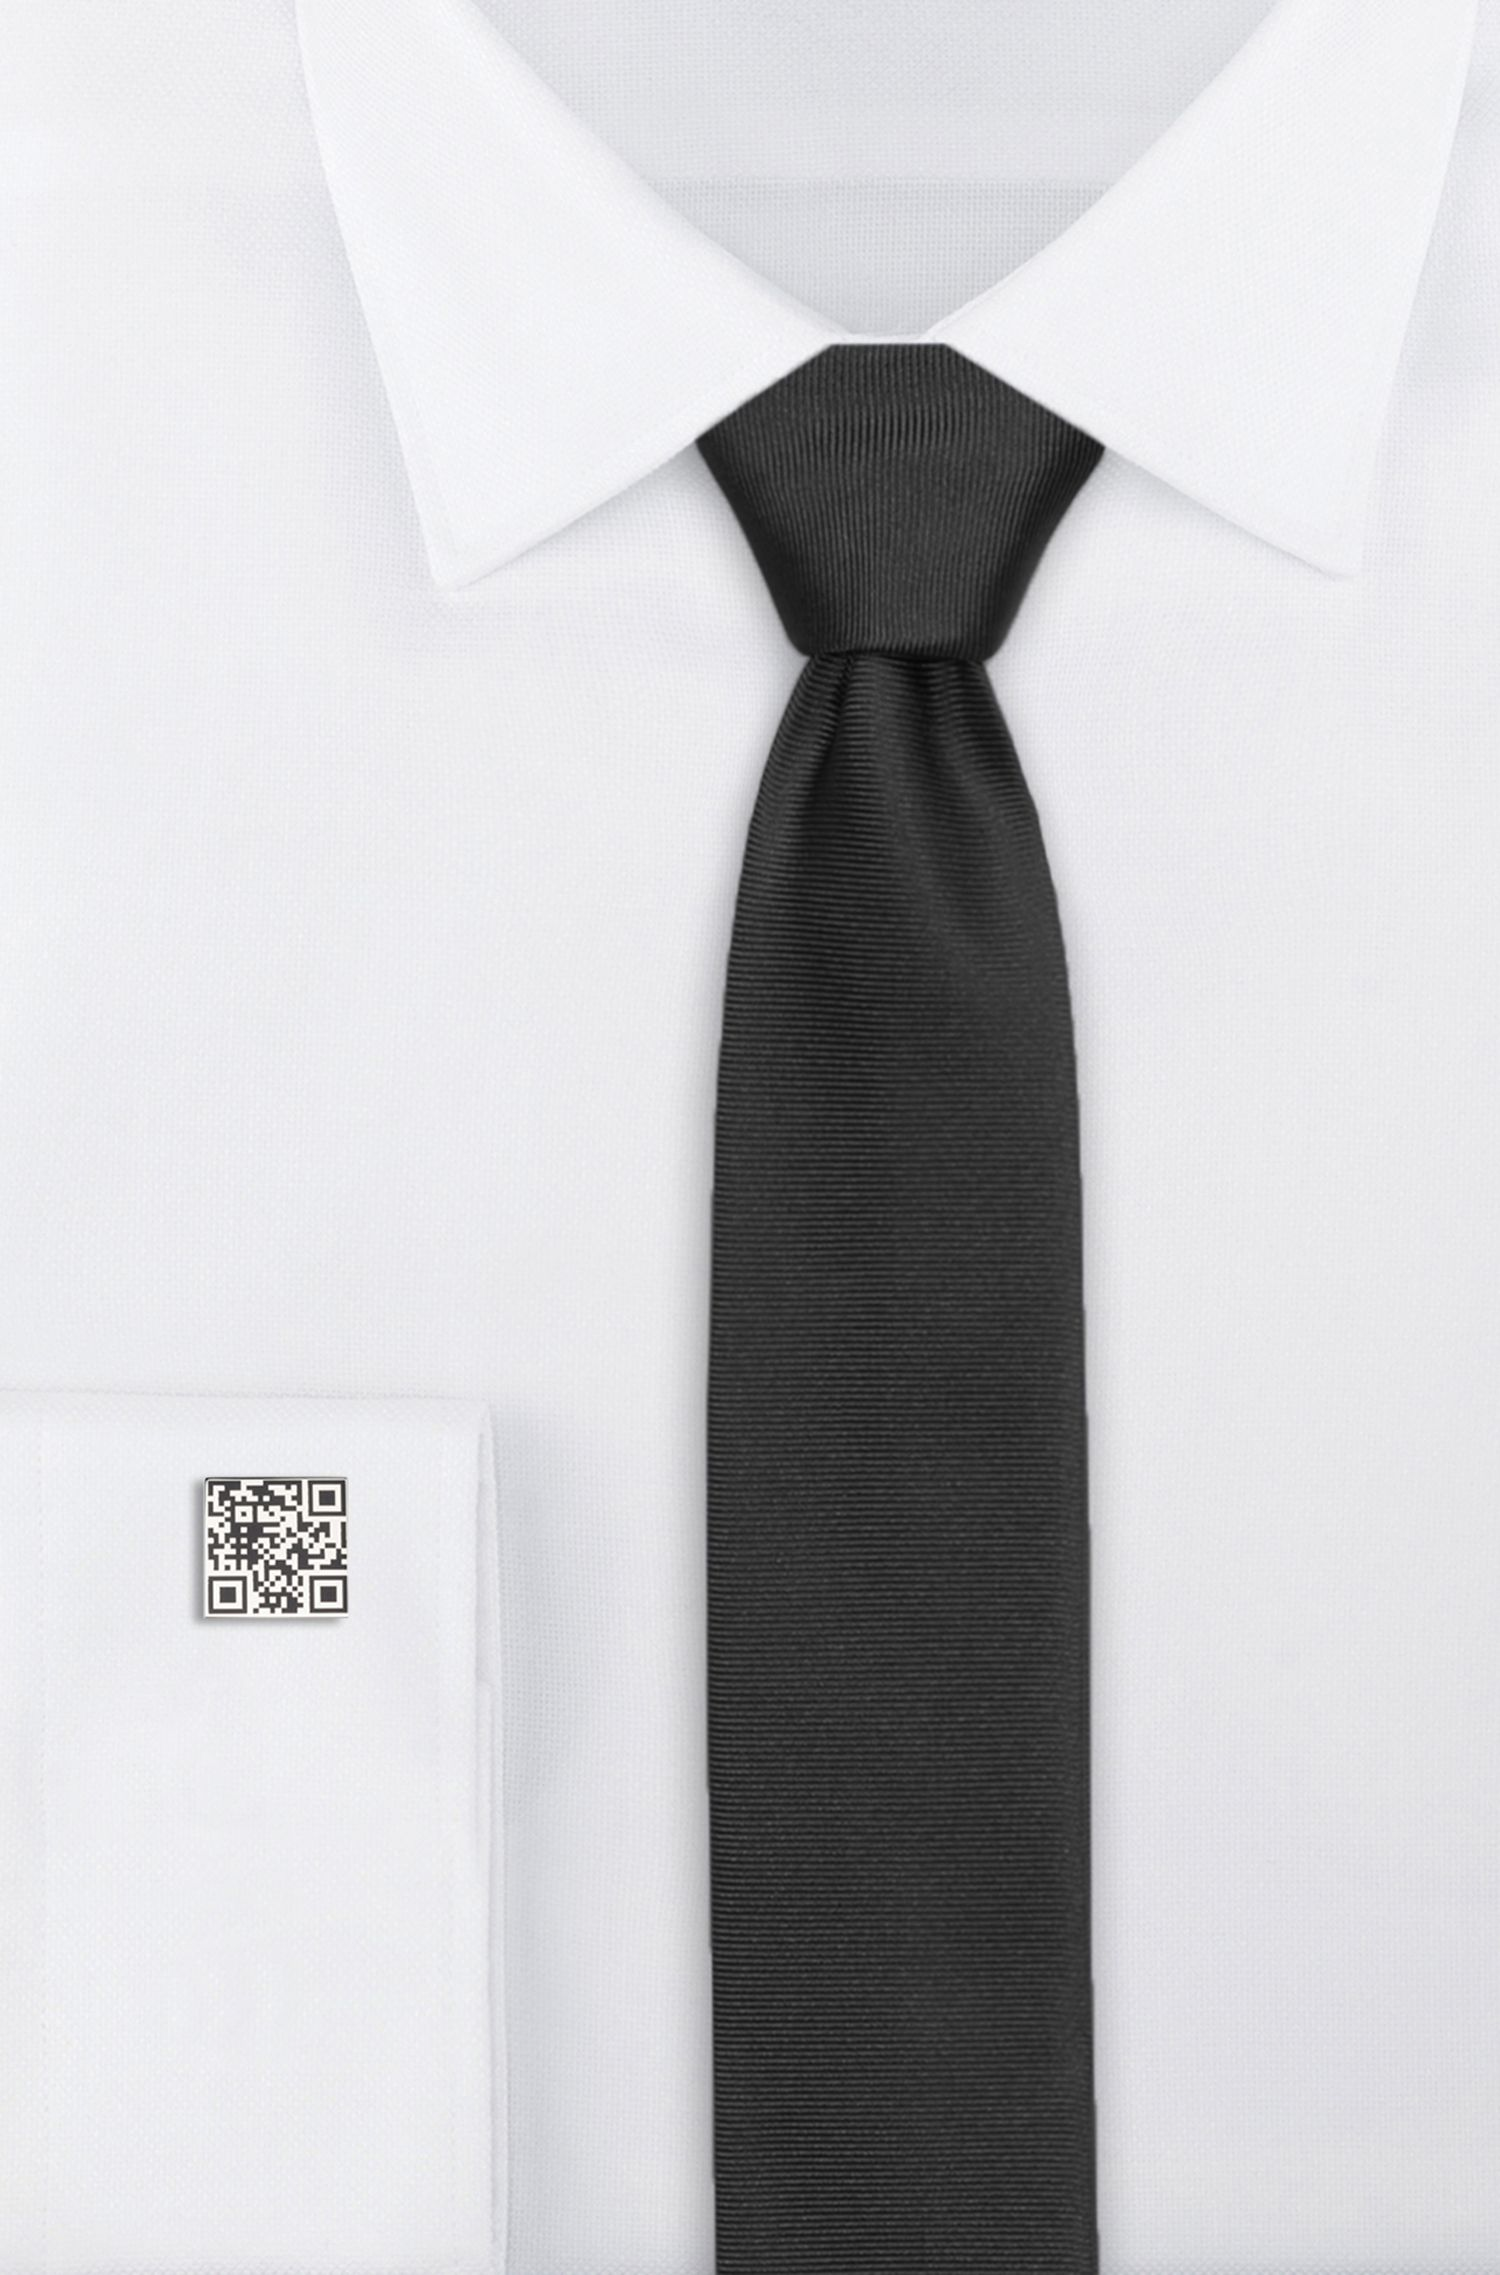 Polished-metal cufflinks with QR-code motif, Silver